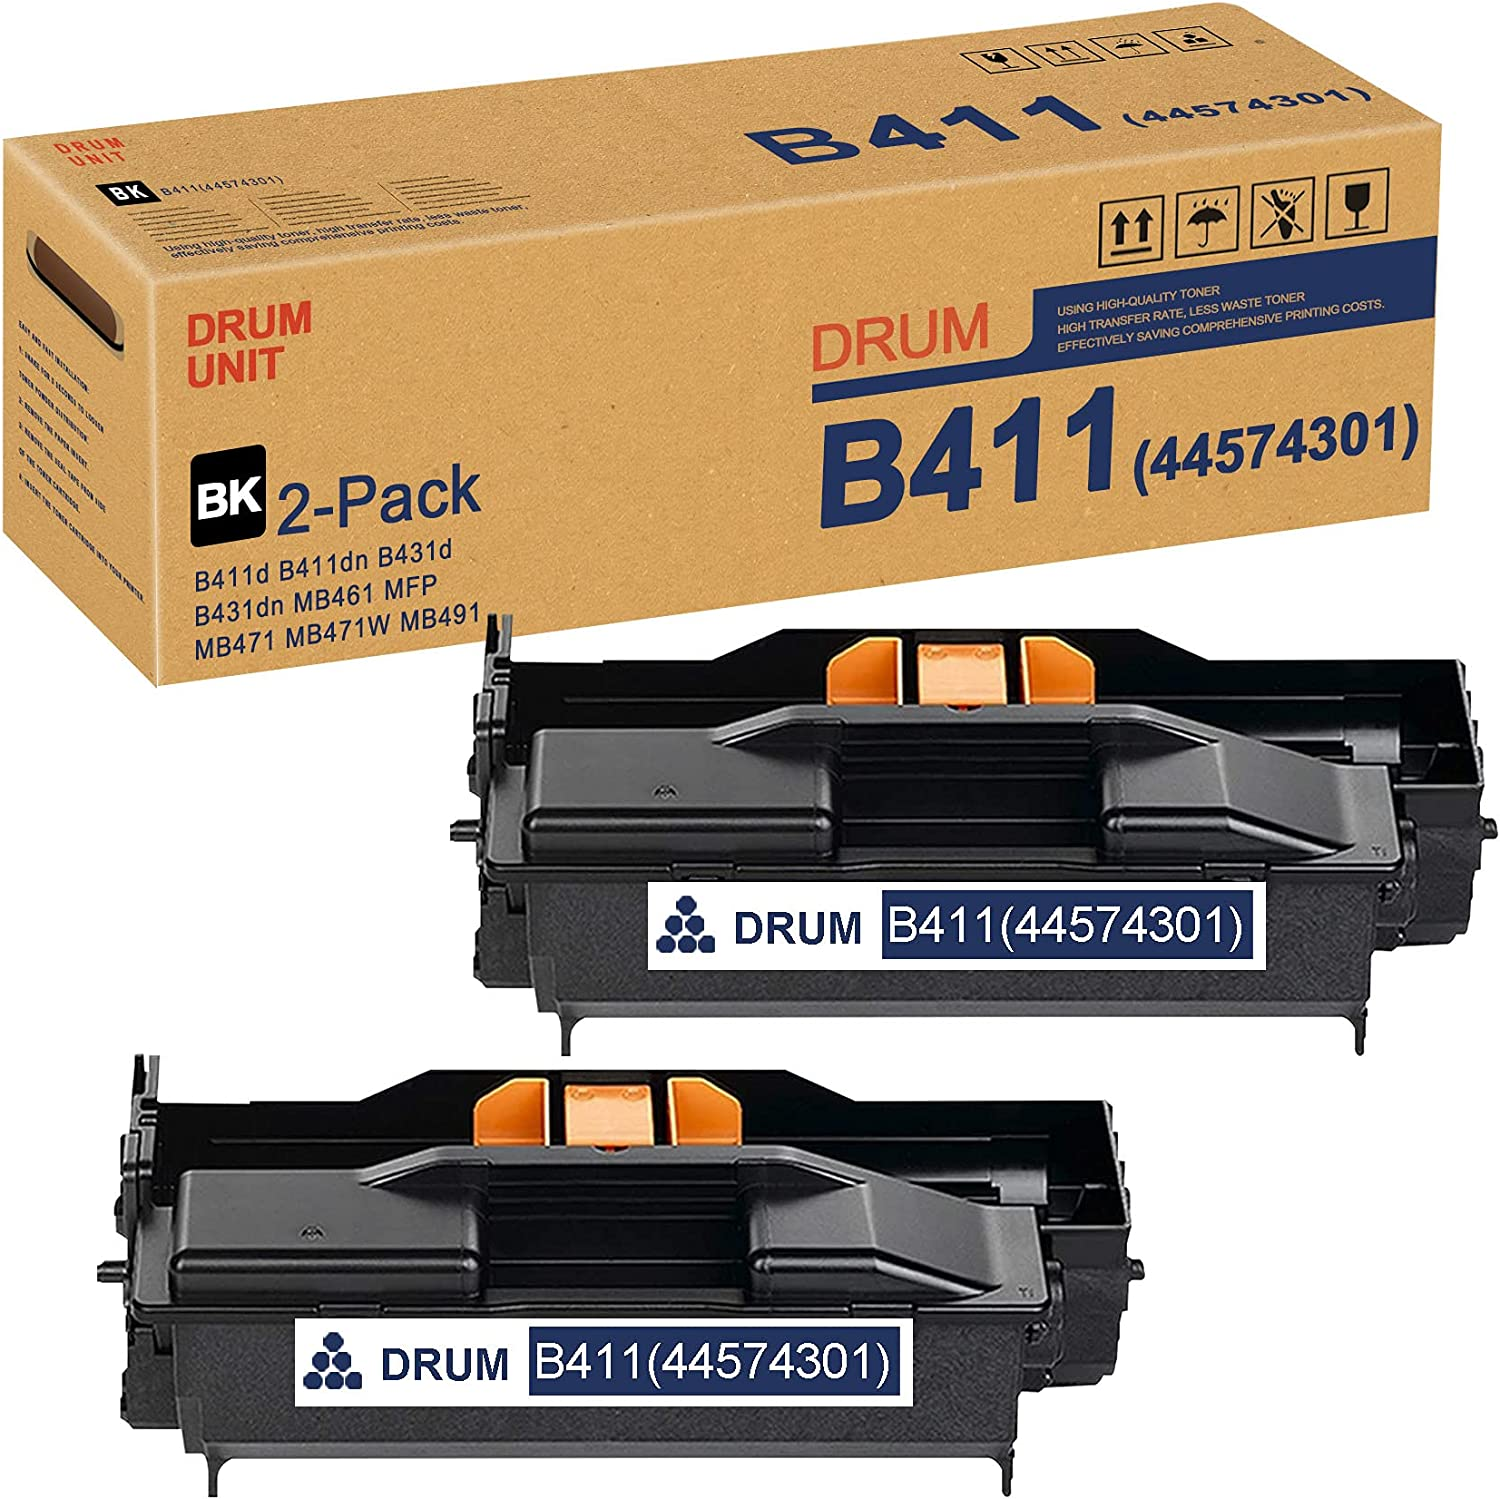 (Black,2 Pack) B411 44574301 Drum Unit Replacement for OKI B411d B411dn B431d B431dn MB461 MFP MB471 MB471W MB491 Drum Kit Printer